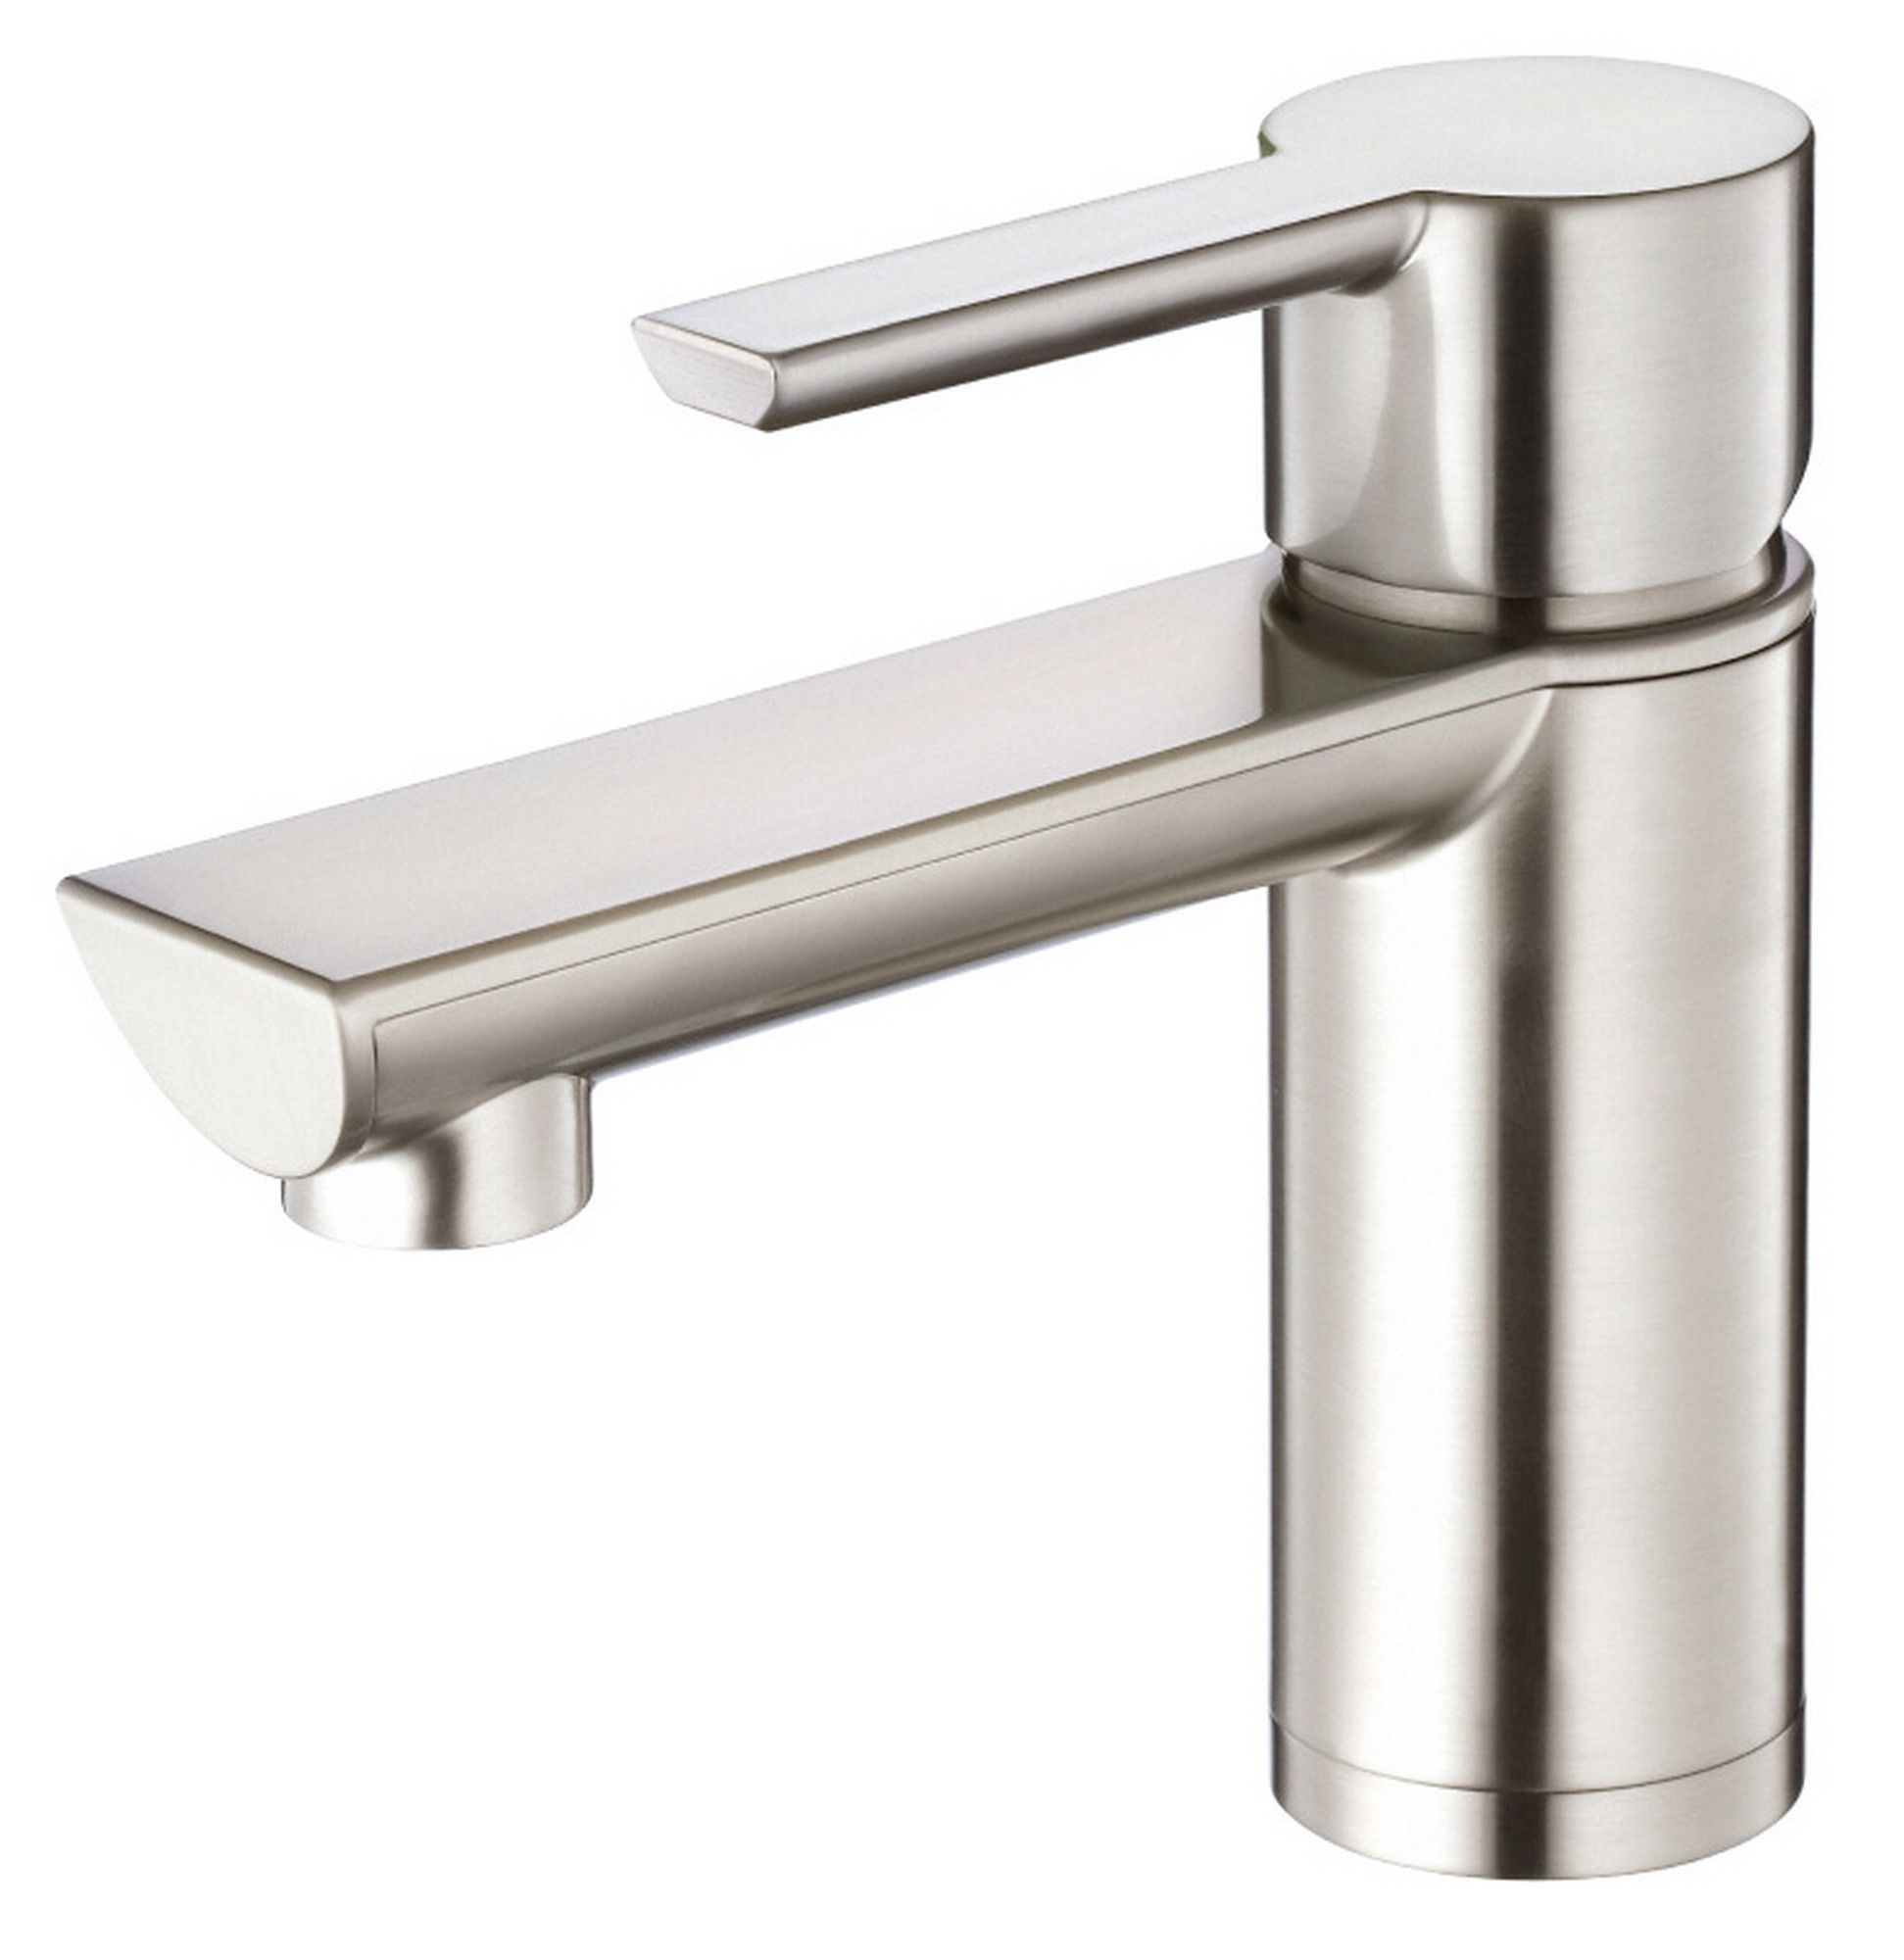 modern cheap bathroom single two ideas and house faucet faucets decoration decorating hole